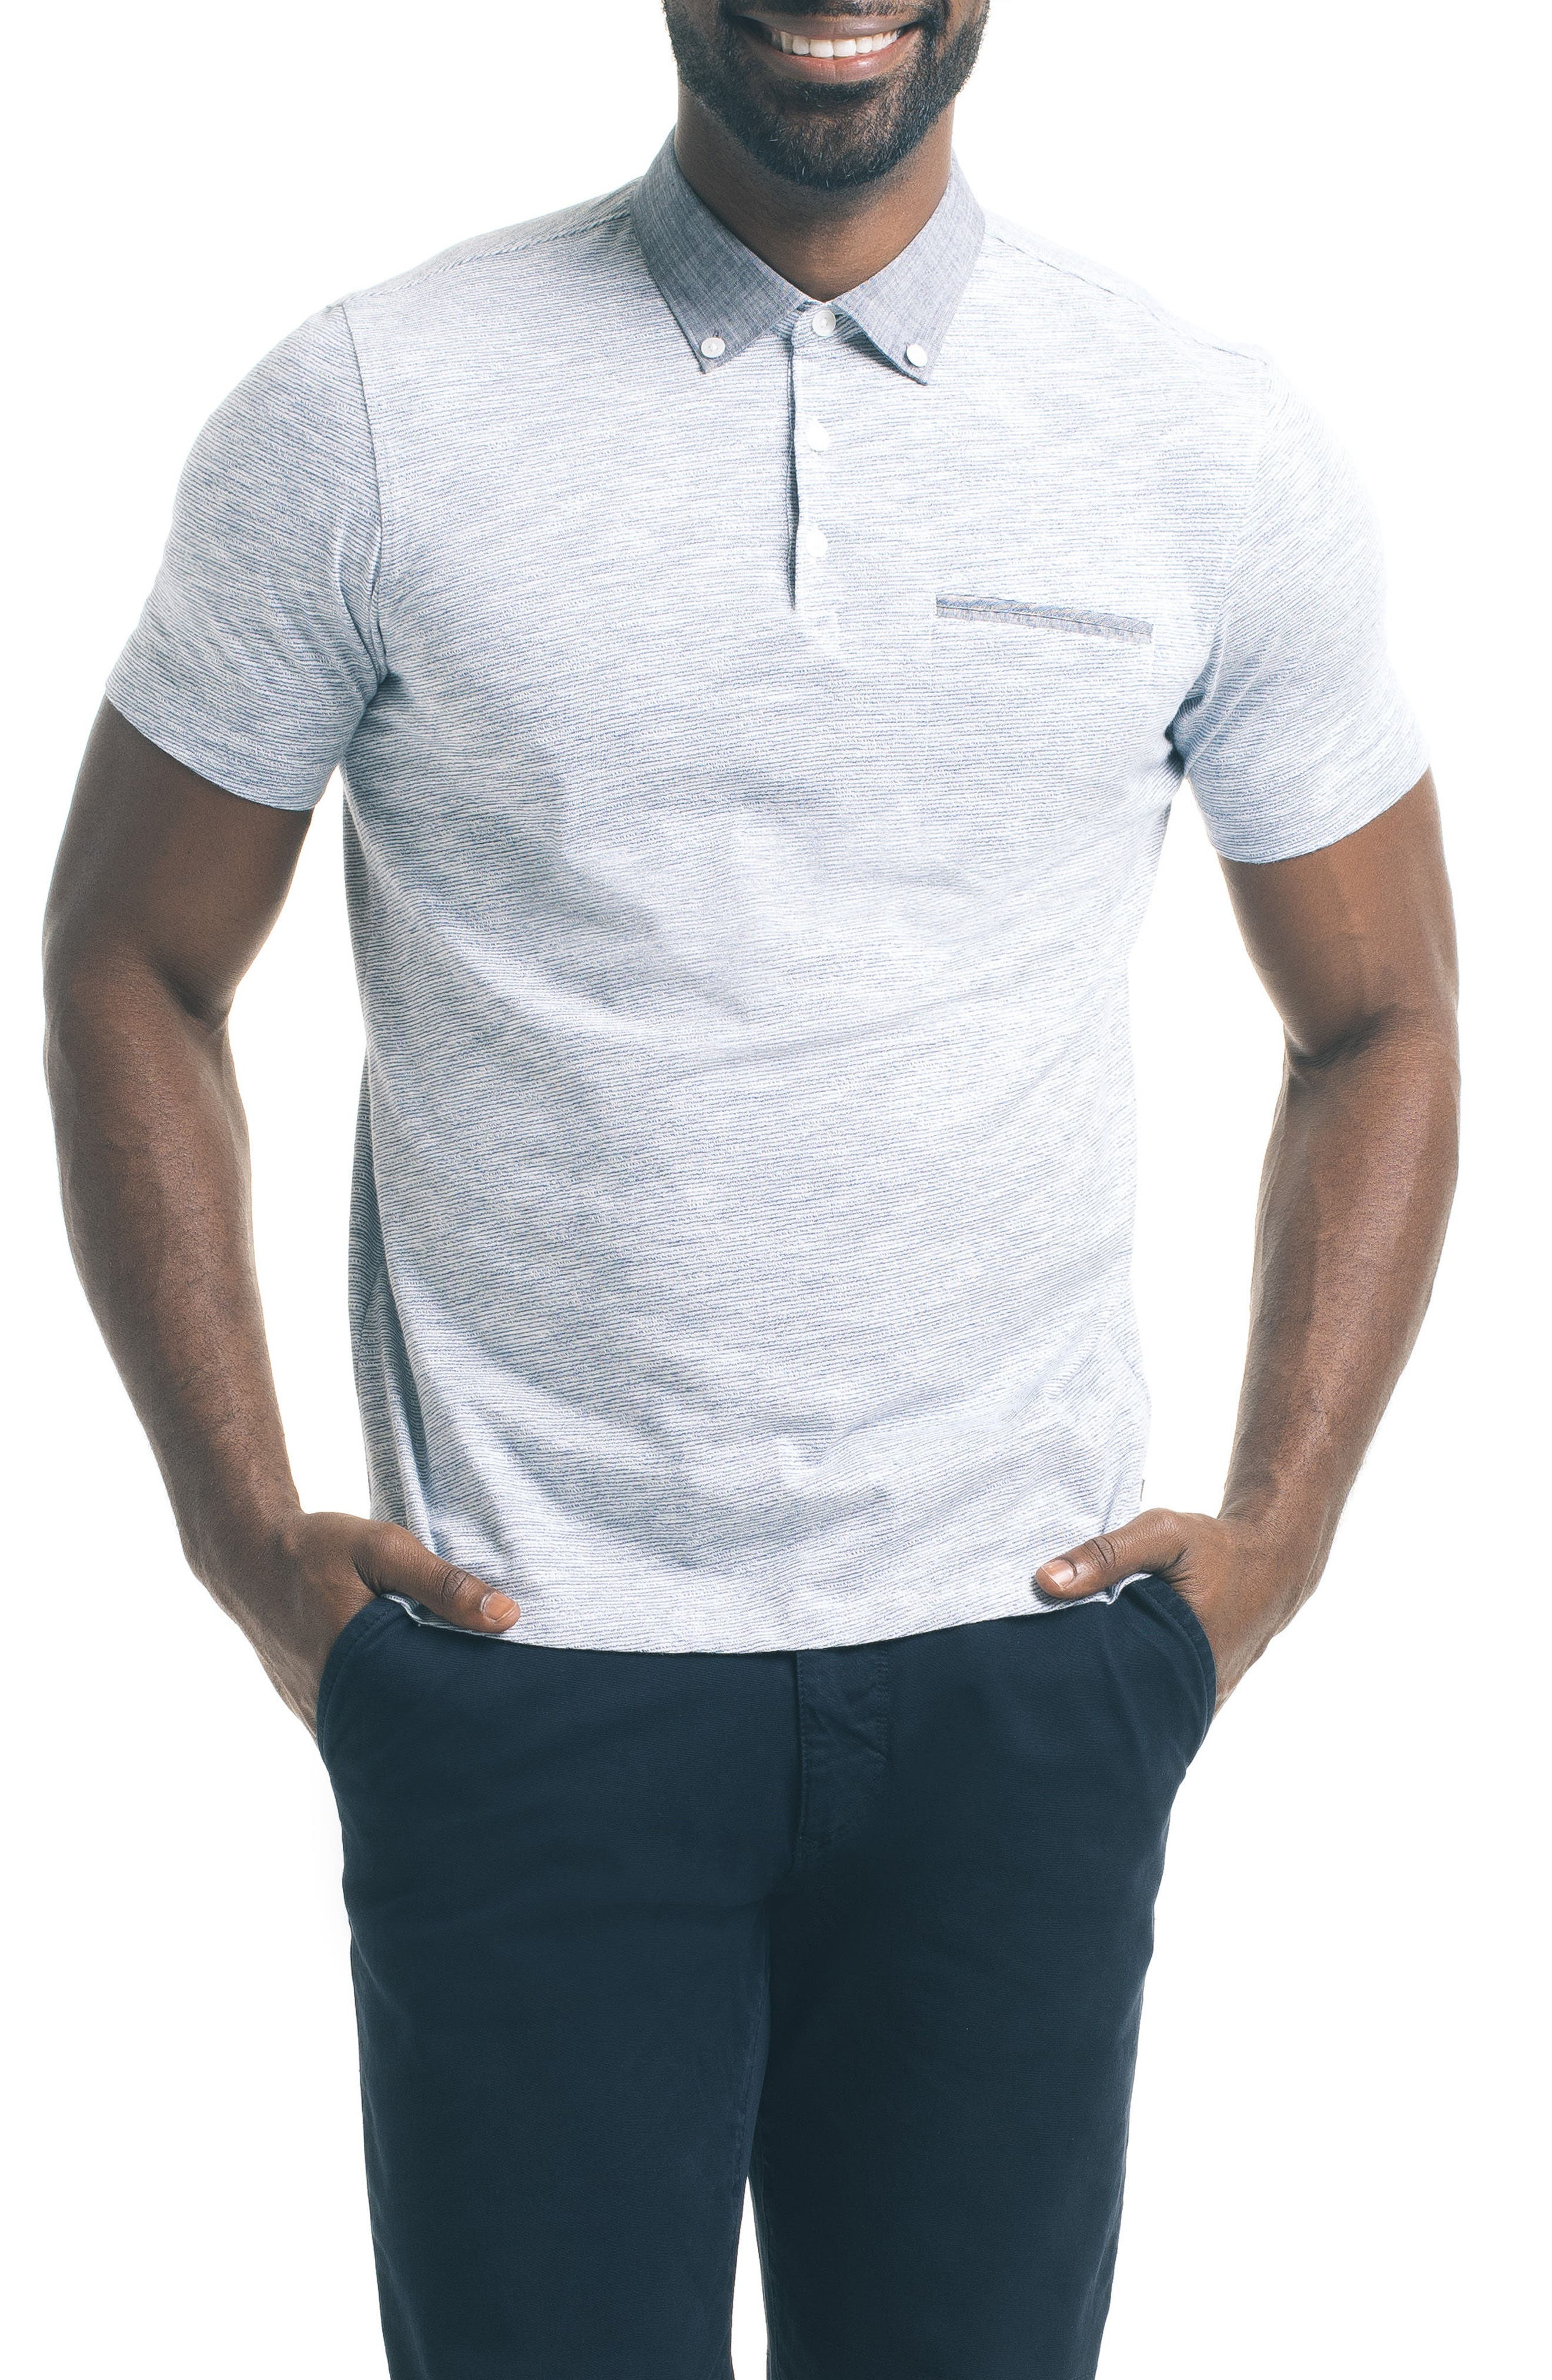 Alternate Image 1 Selected - Good Man Brand Trim Fit Carbon Peach Polo